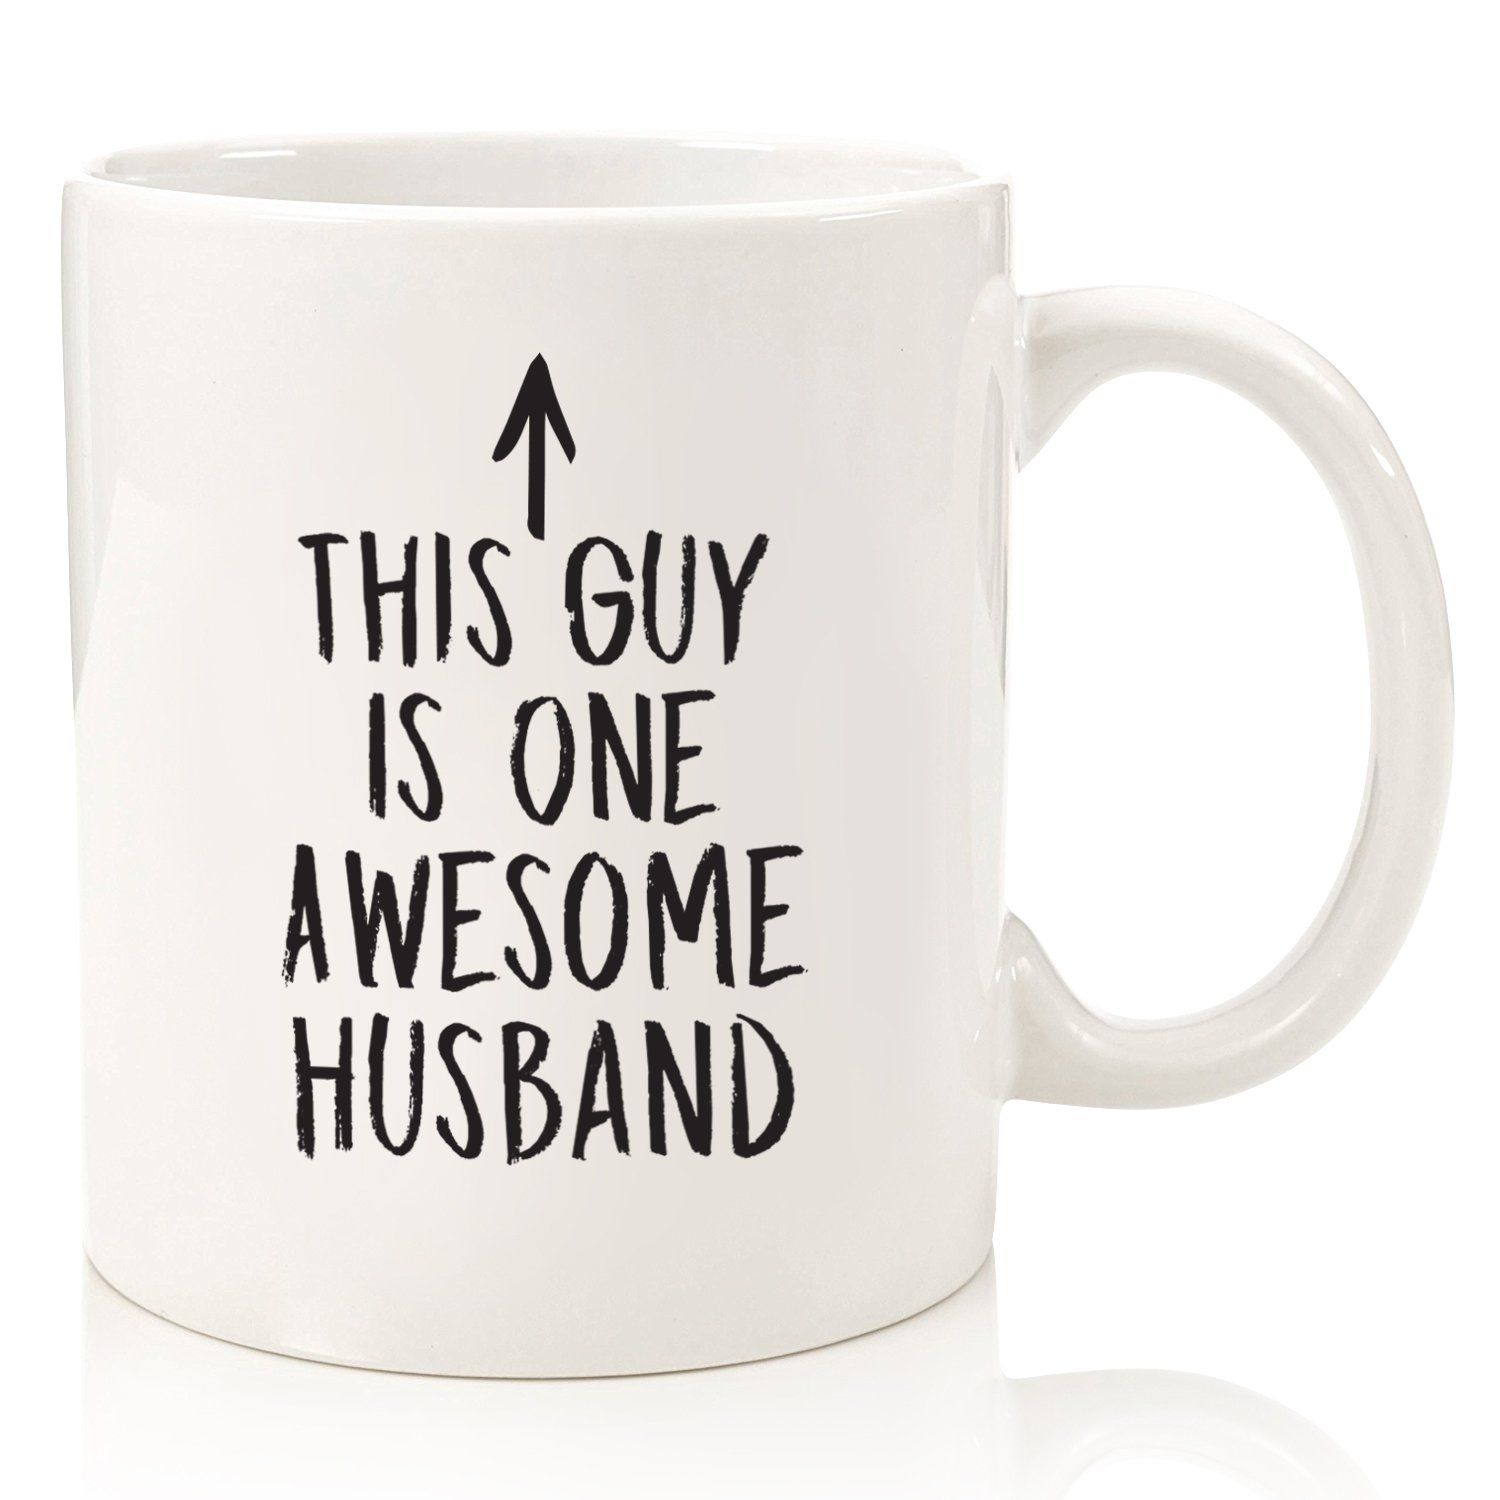 Amazon Husband Gifts